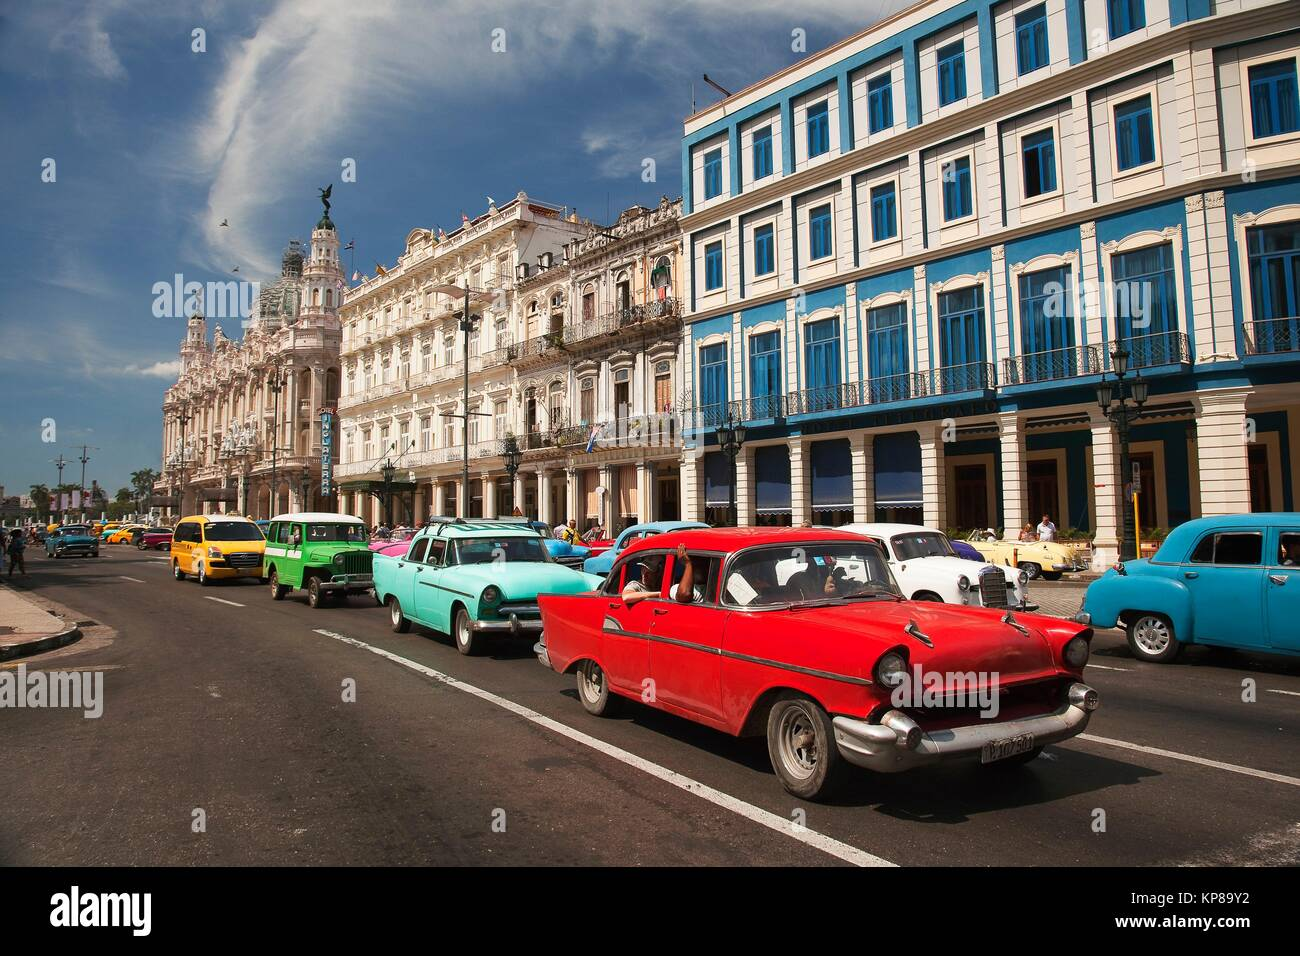 Colorful old American cars used as taxi in front of the Hotel Telegrafo and Hotel Inglaterra in Central Havana, - Stock Image